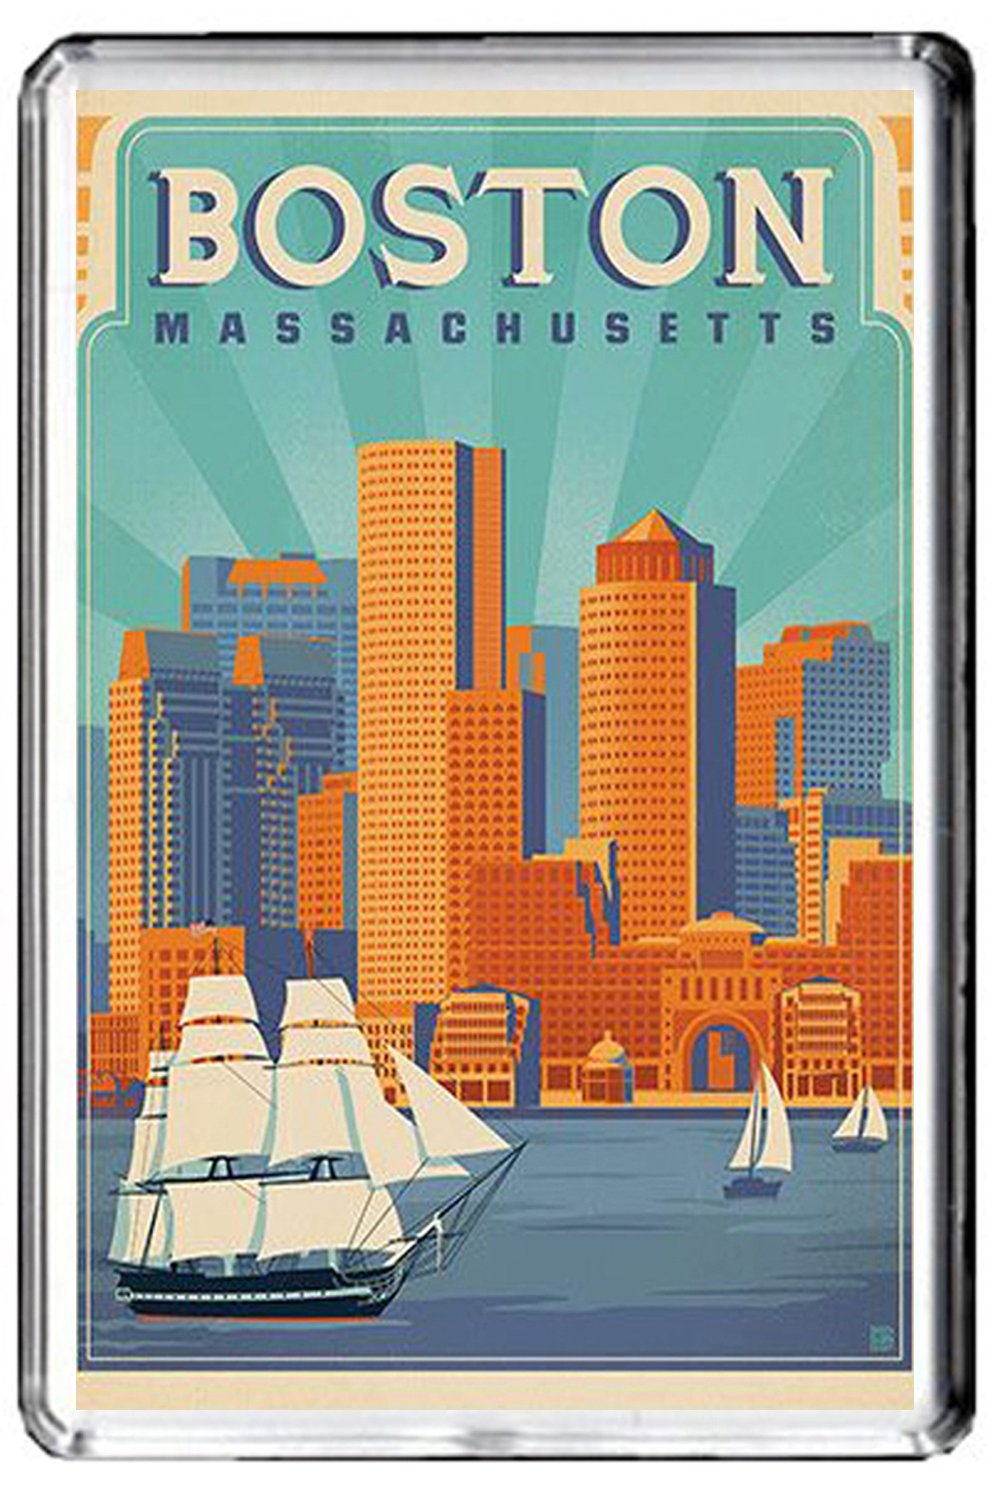 CFL B419 BOSTON USA FRIDGE MAGNET USA VINTAGE TRAVEL PHOTO MAGNETICA CALAMITA FRIGO